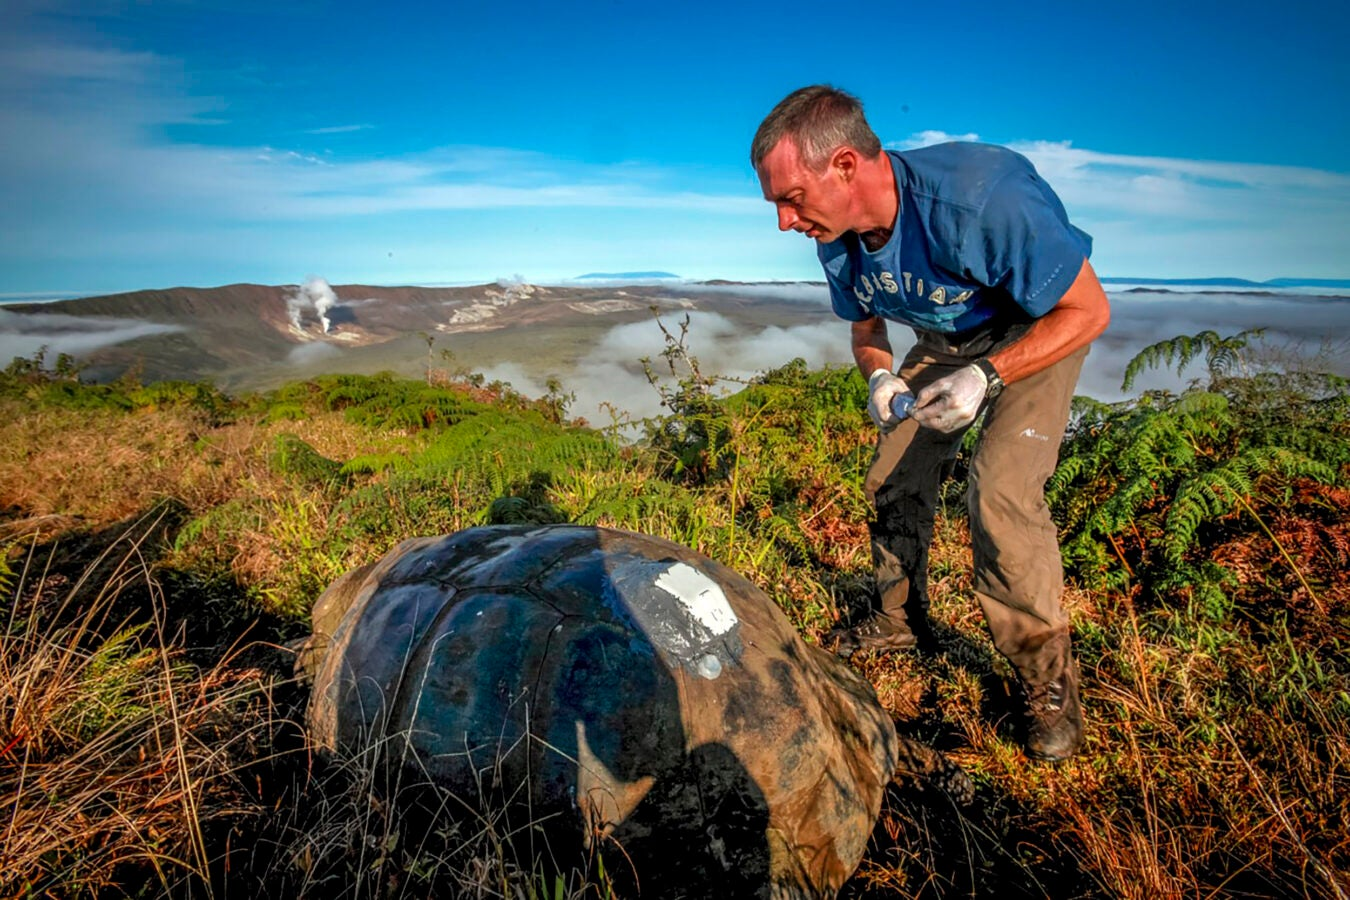 A Galapagos giant tortoise with a solar GPS tag. Tracking wildlife during the COVID-19 lockdown has given researchers new insights on animal movements. Photo by Christian Ziegler (C)